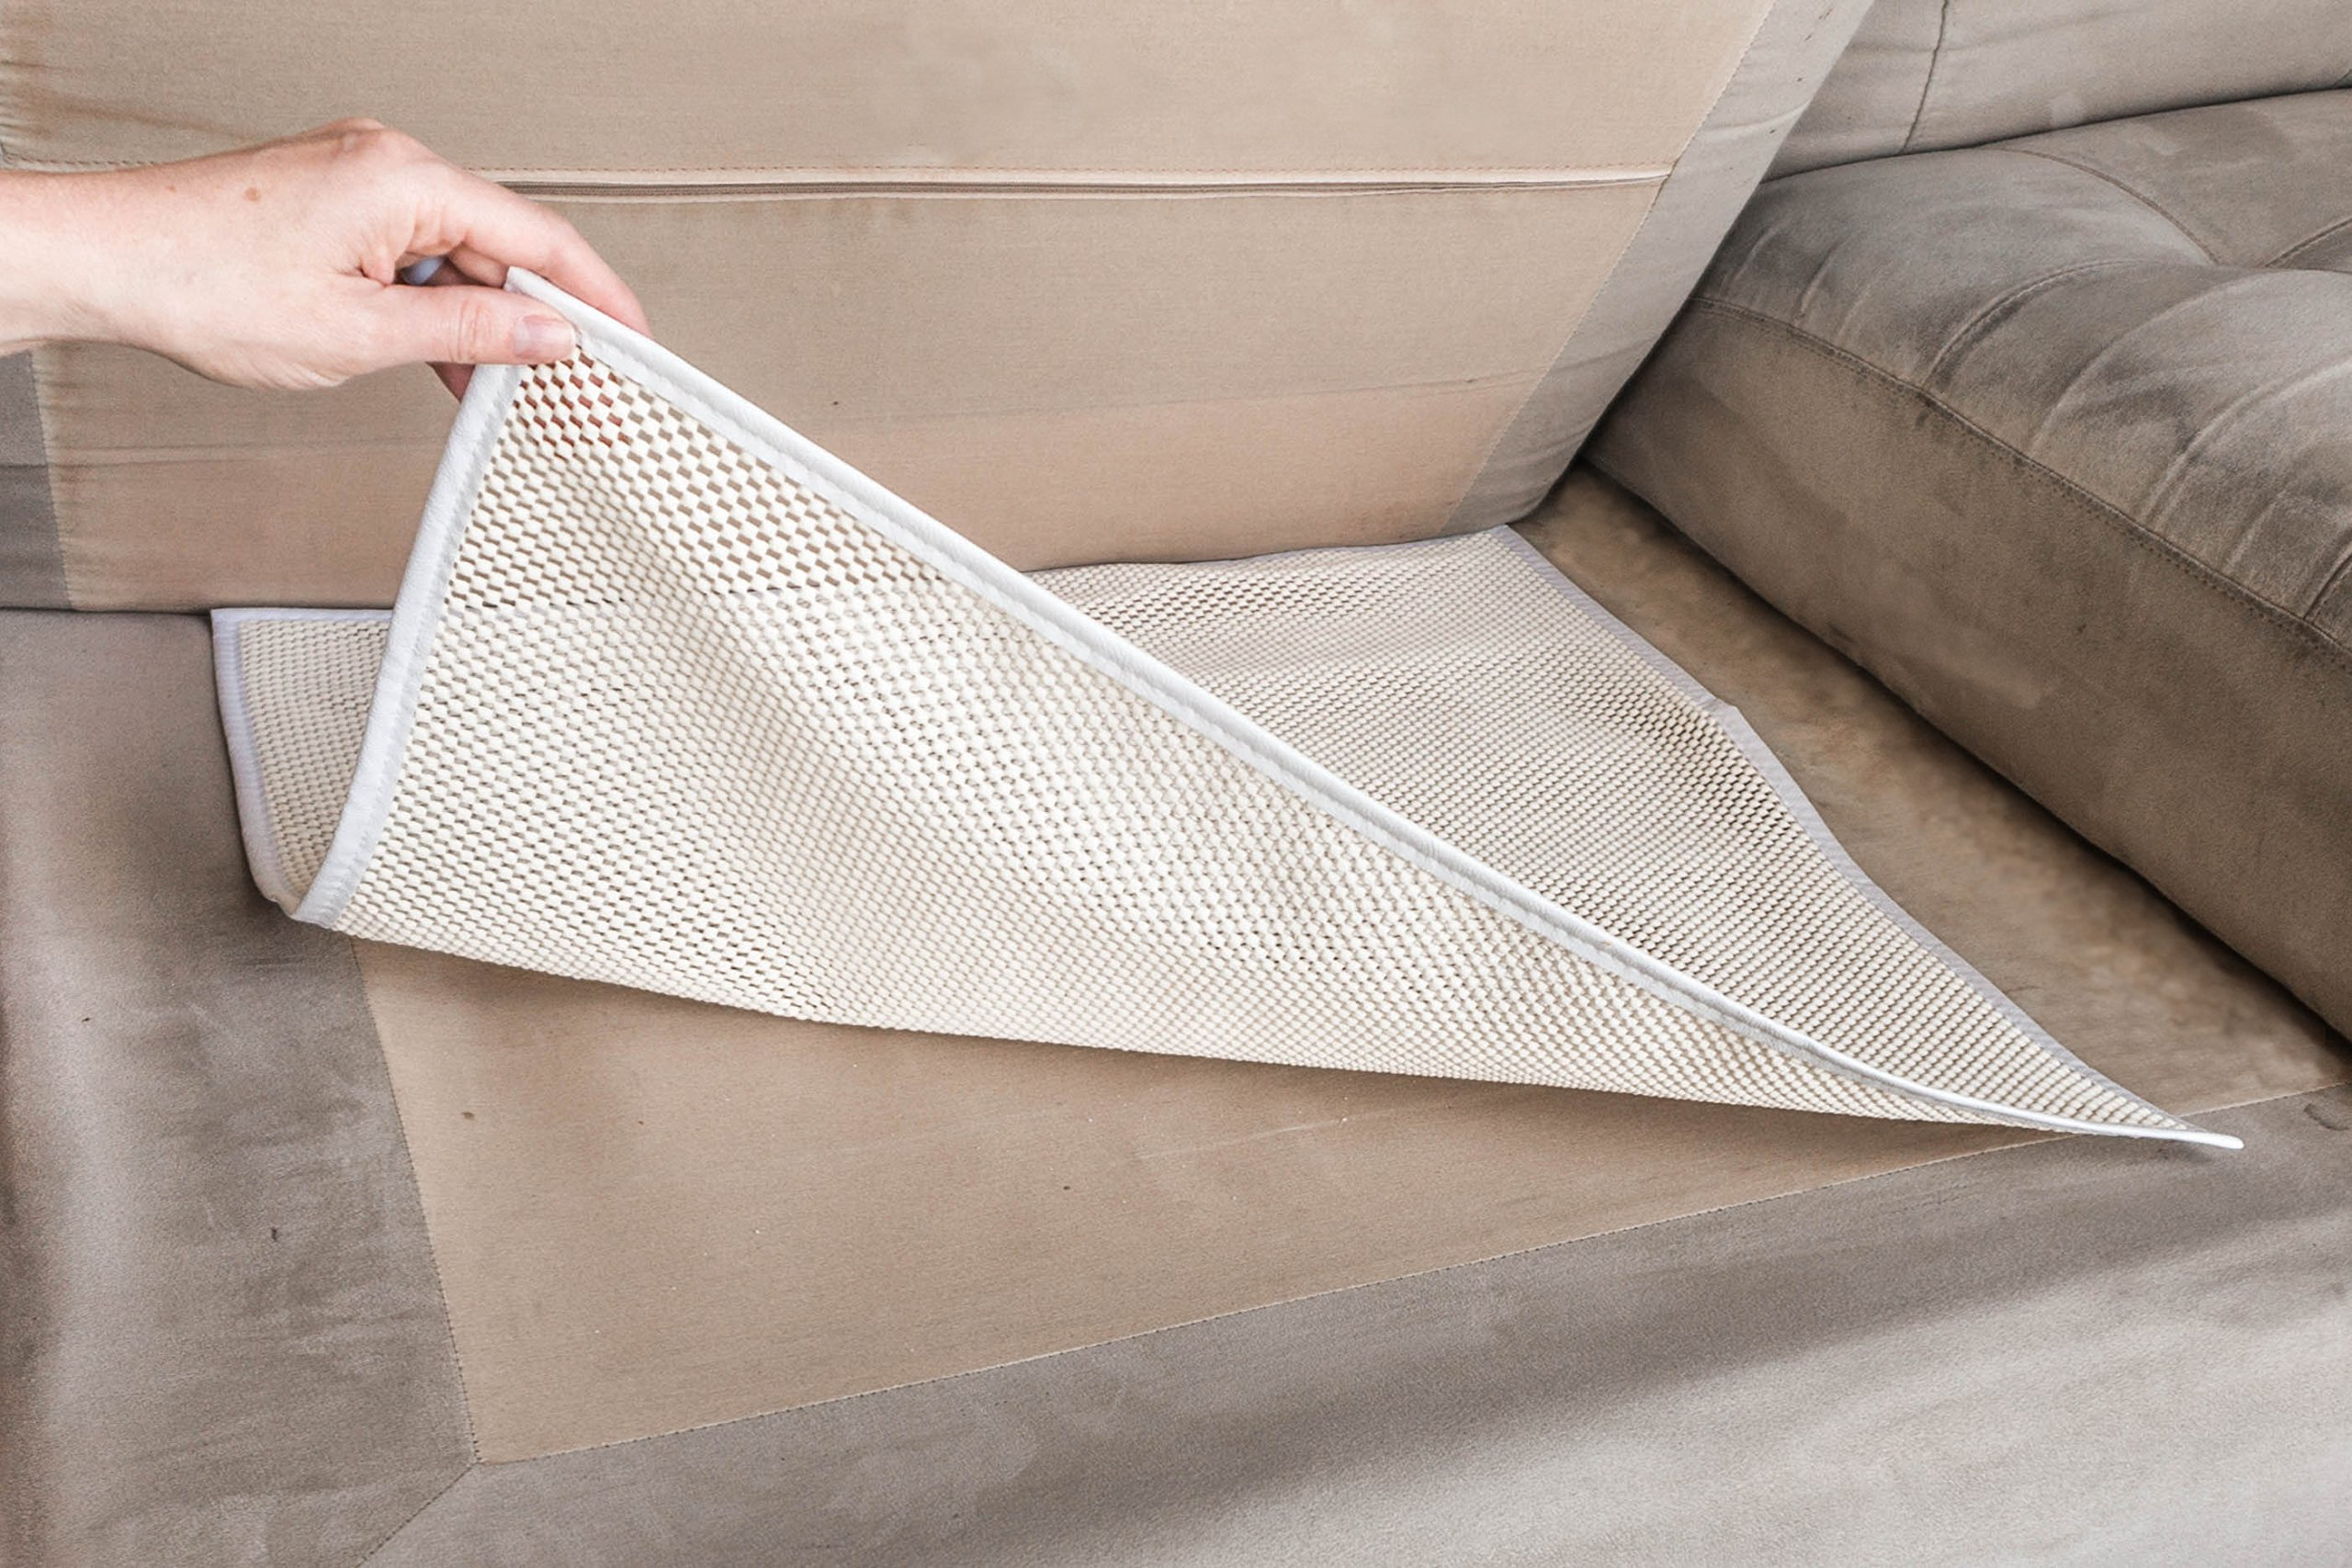 Cushion Stay Non-Slip Natural Rubber Underlay, Keep Cushions from Moving, Slipping or Sliding (3)